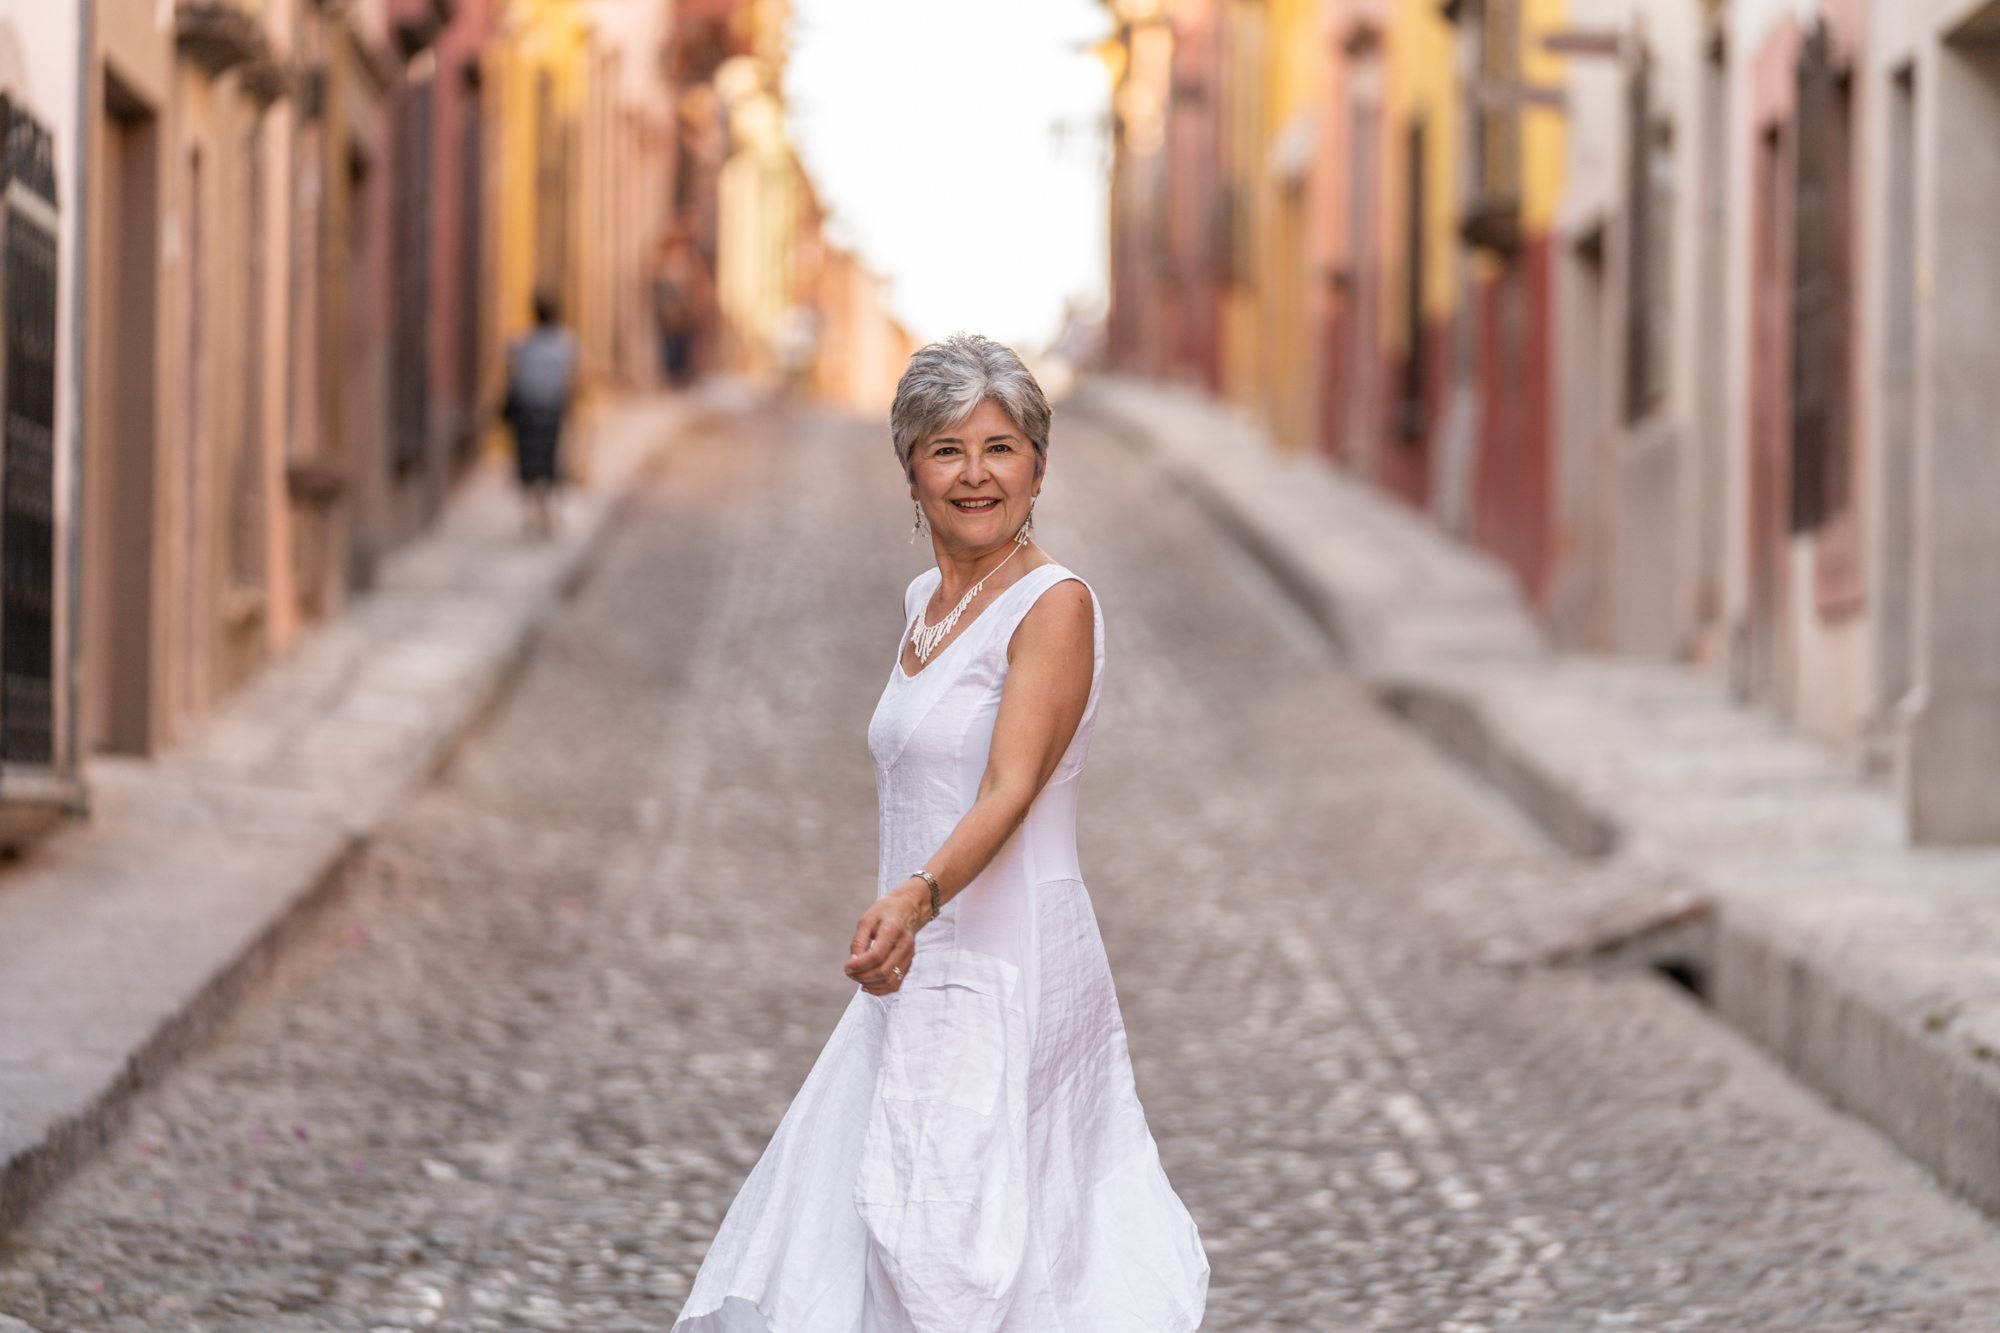 Photoshoot session in San Miguel de Allende with Suzanne and Leo-25.jpg